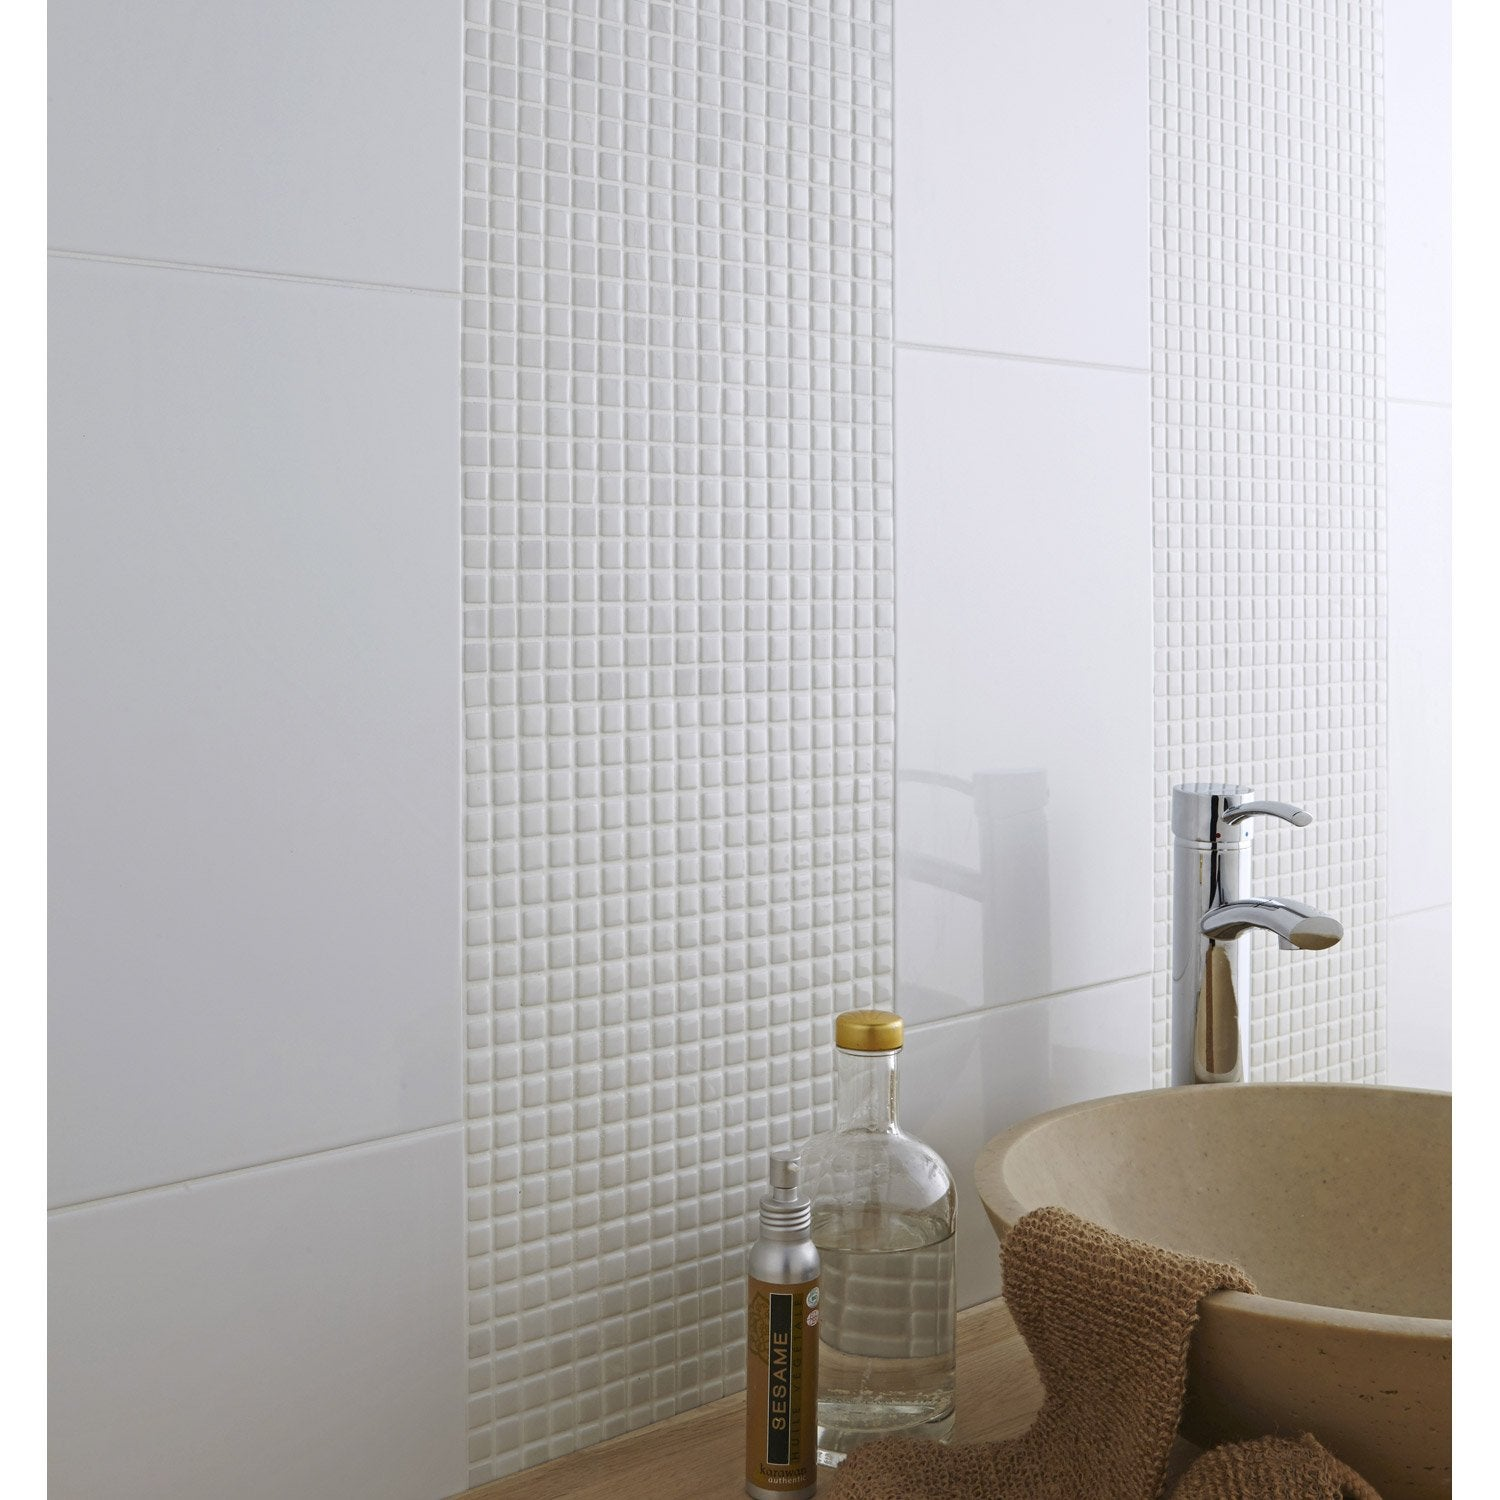 Carrelage mosaique blanc id es de for Carrelage mosaique leroy merlin